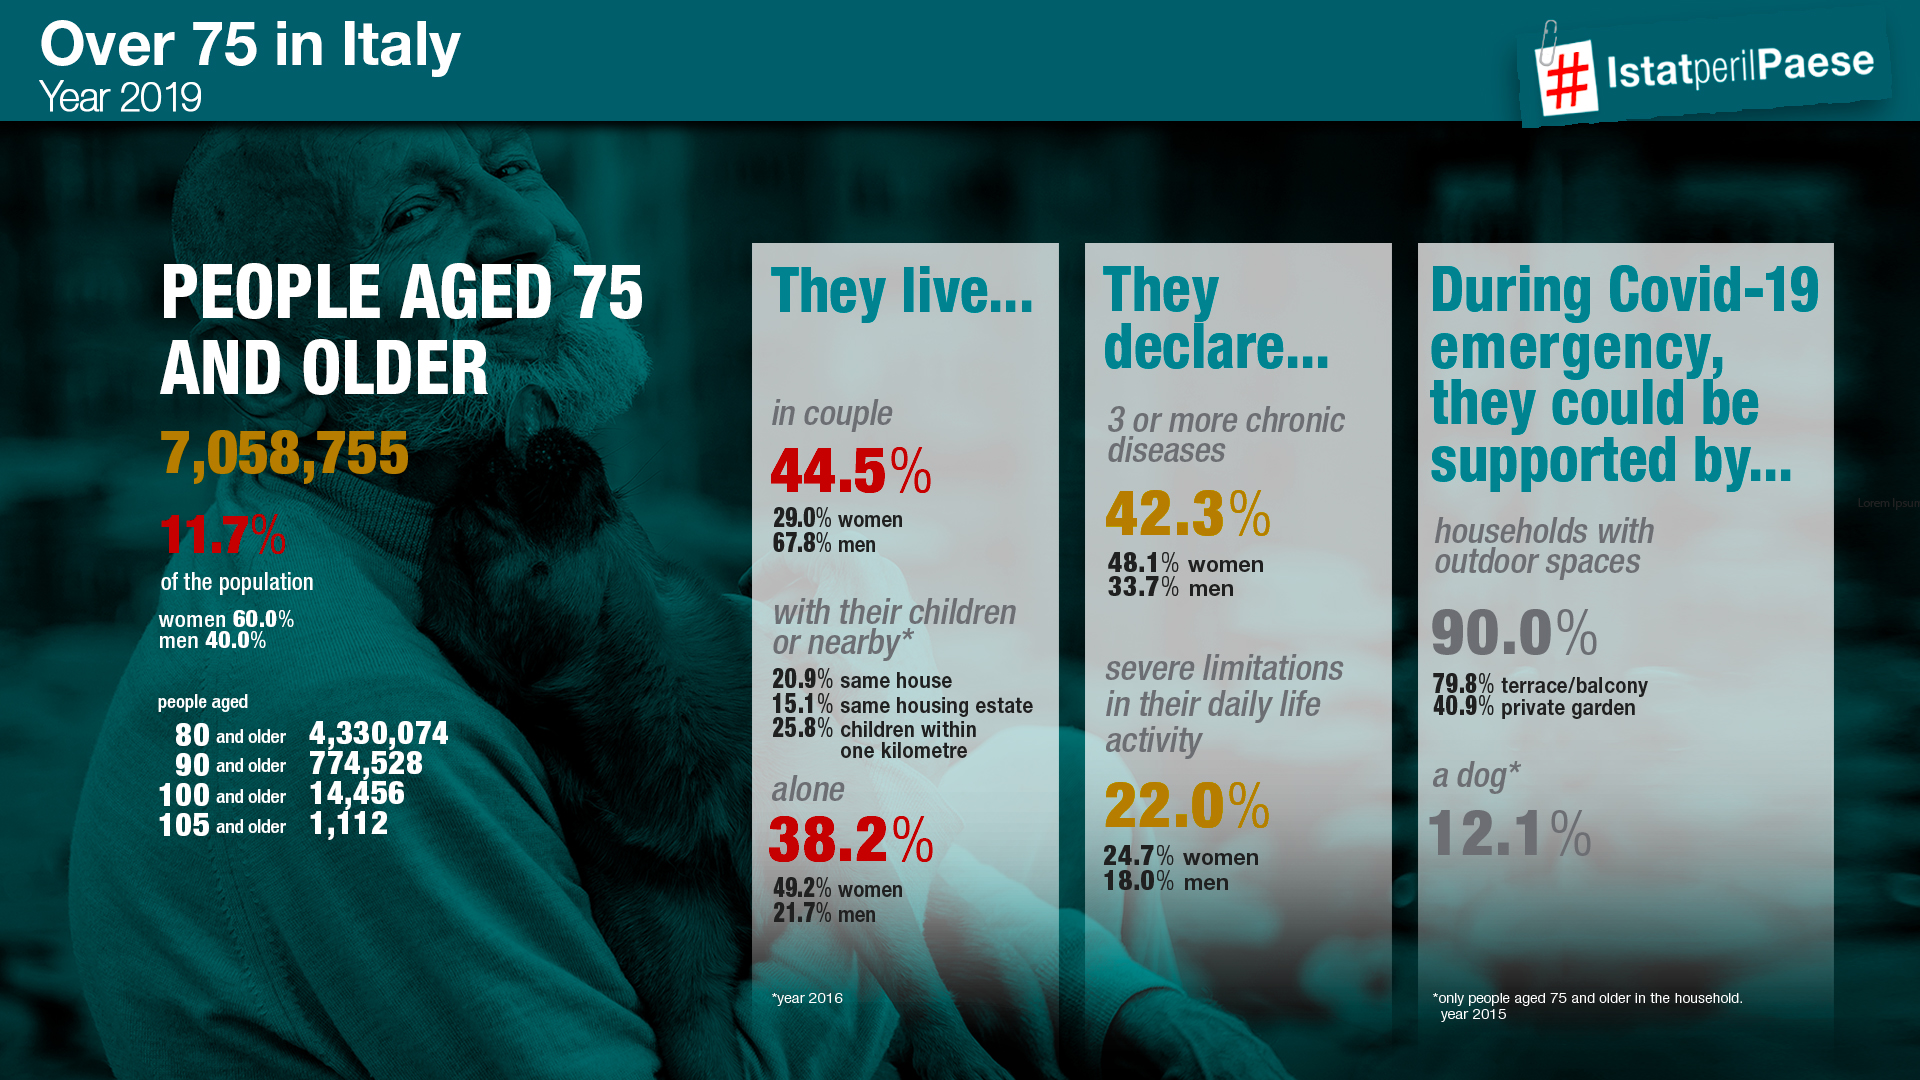 People aged 75 and older in Italy-imfographic